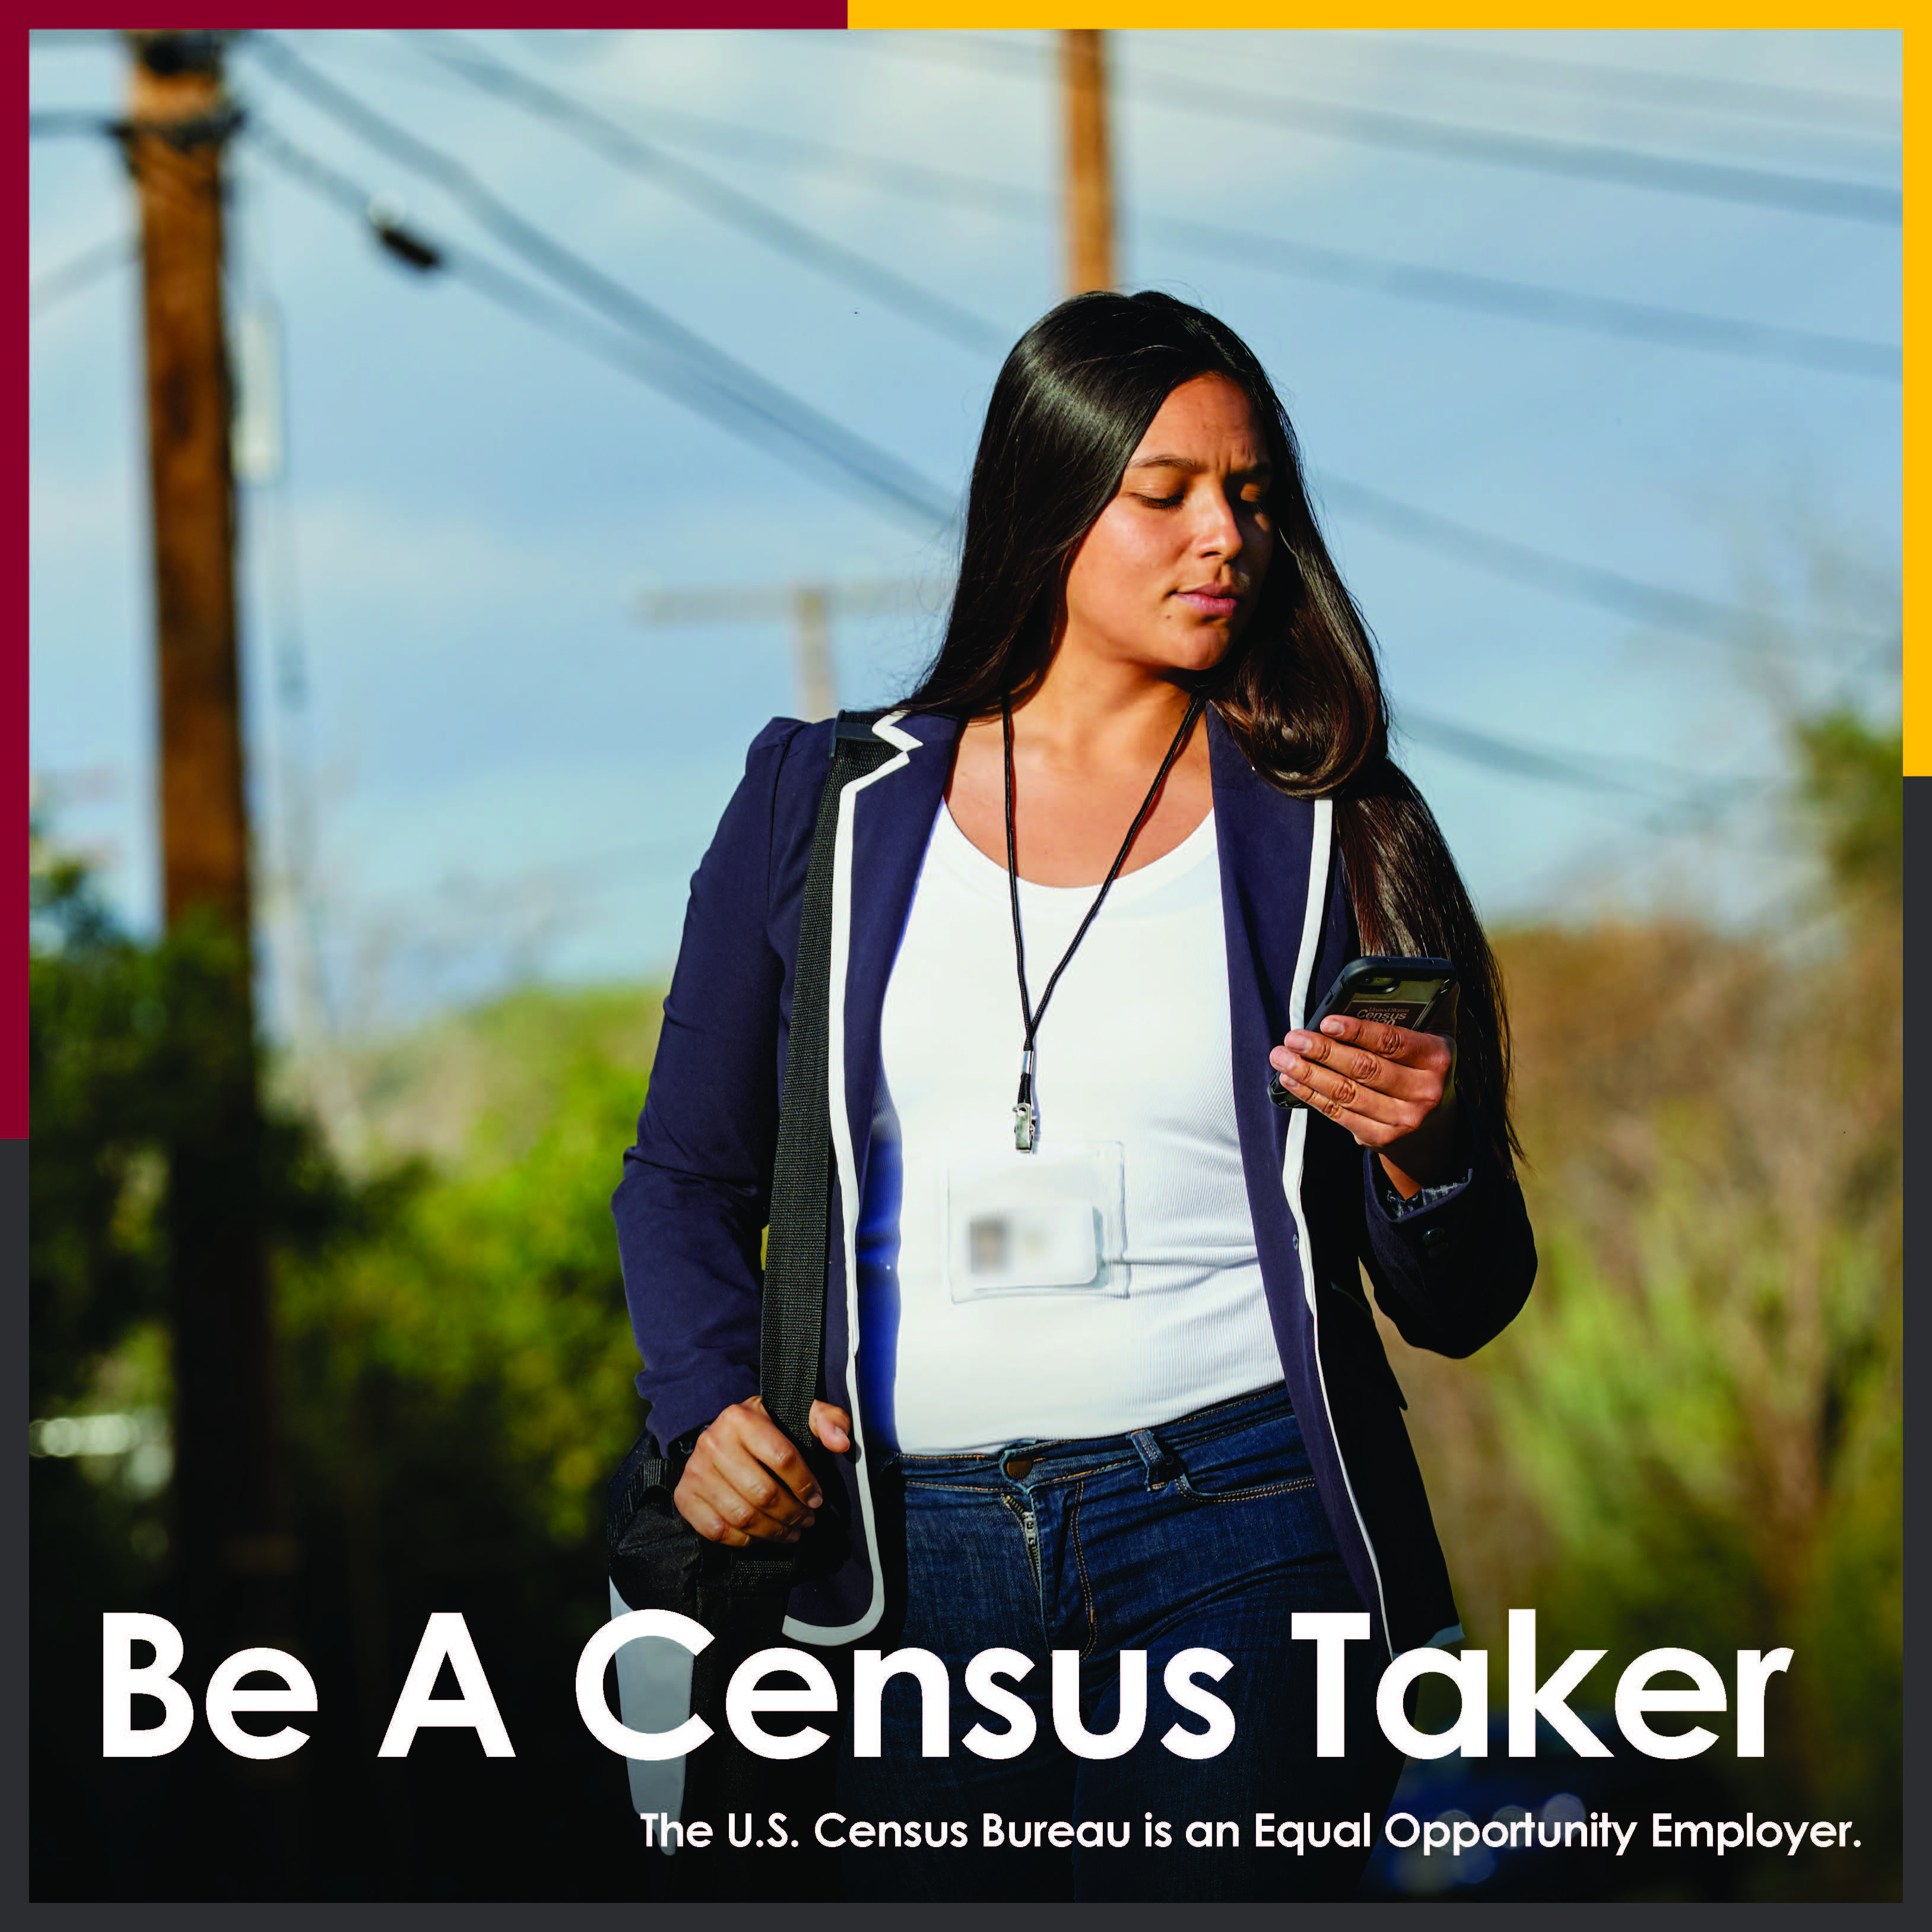 Census taker graphic young